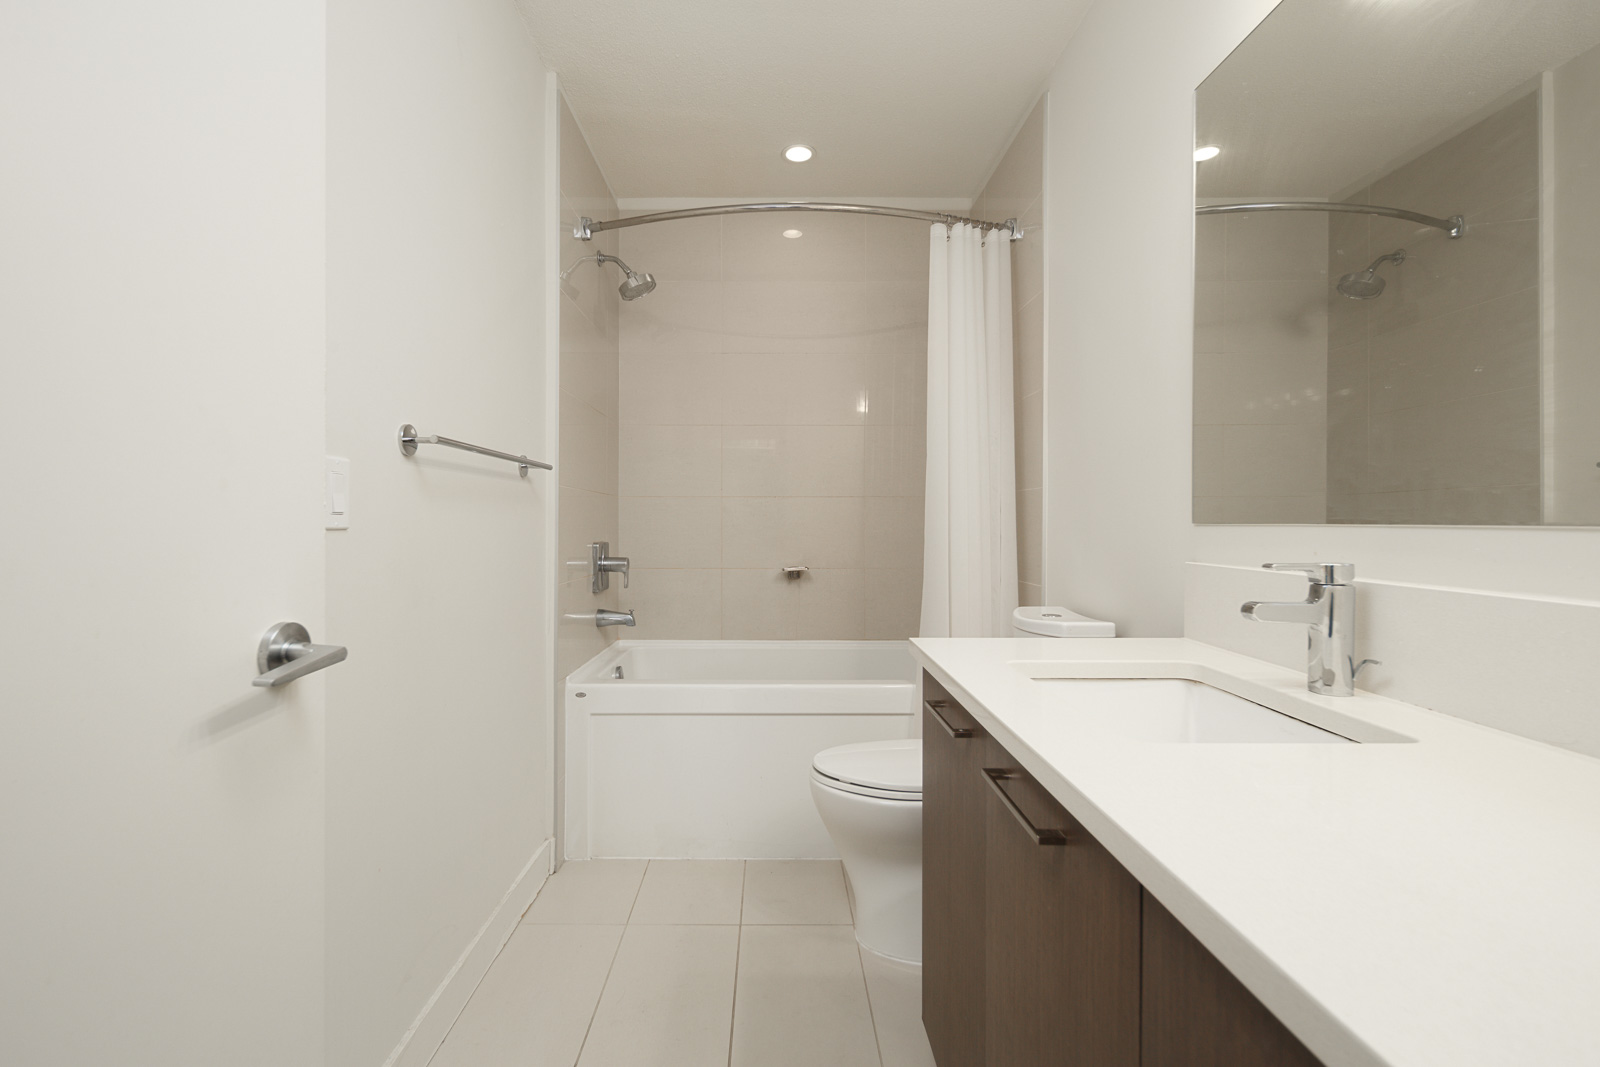 bathroom with tub and white walls